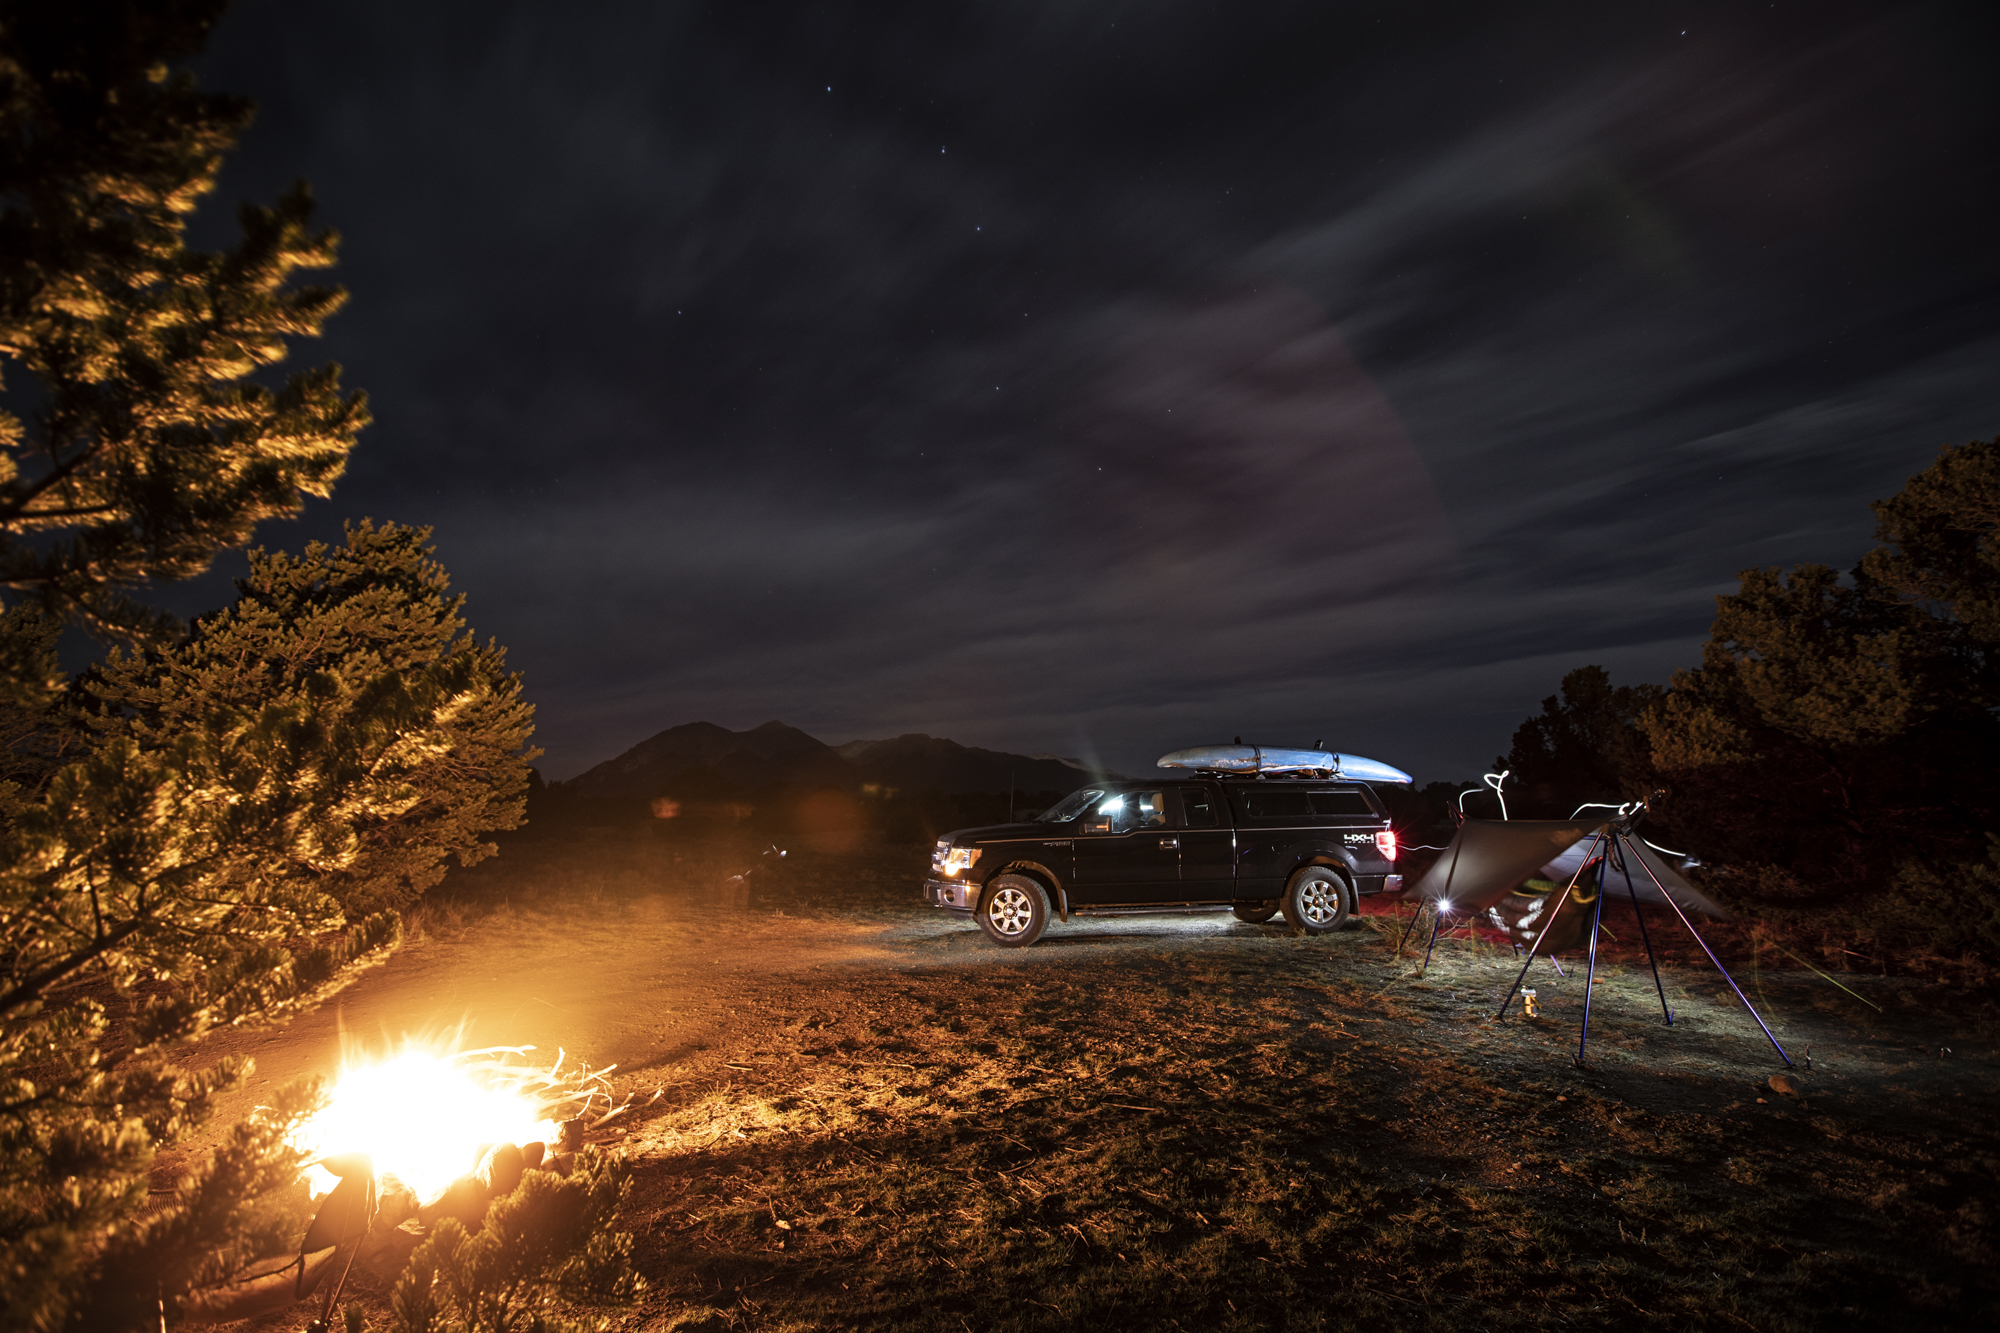 Nate and I did some light painting of the campsite.